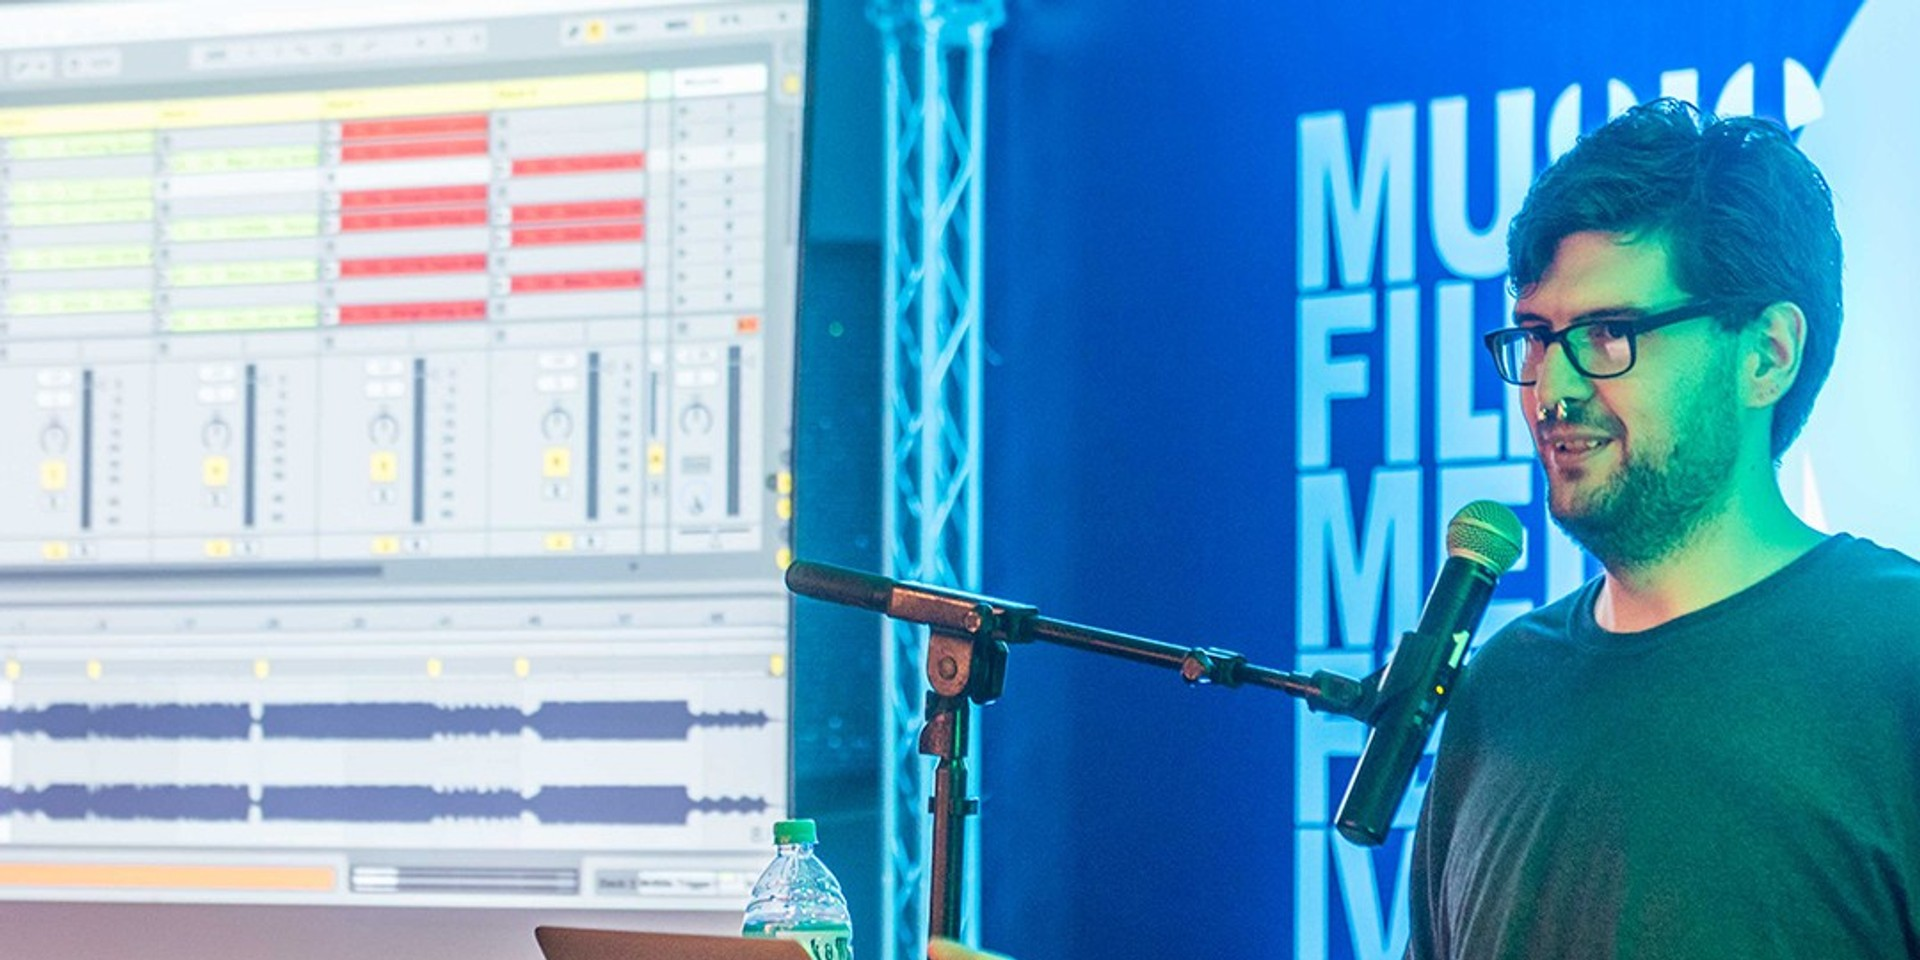 Australian glitch producer Mr. Bill to hold music production masterclass in Singapore